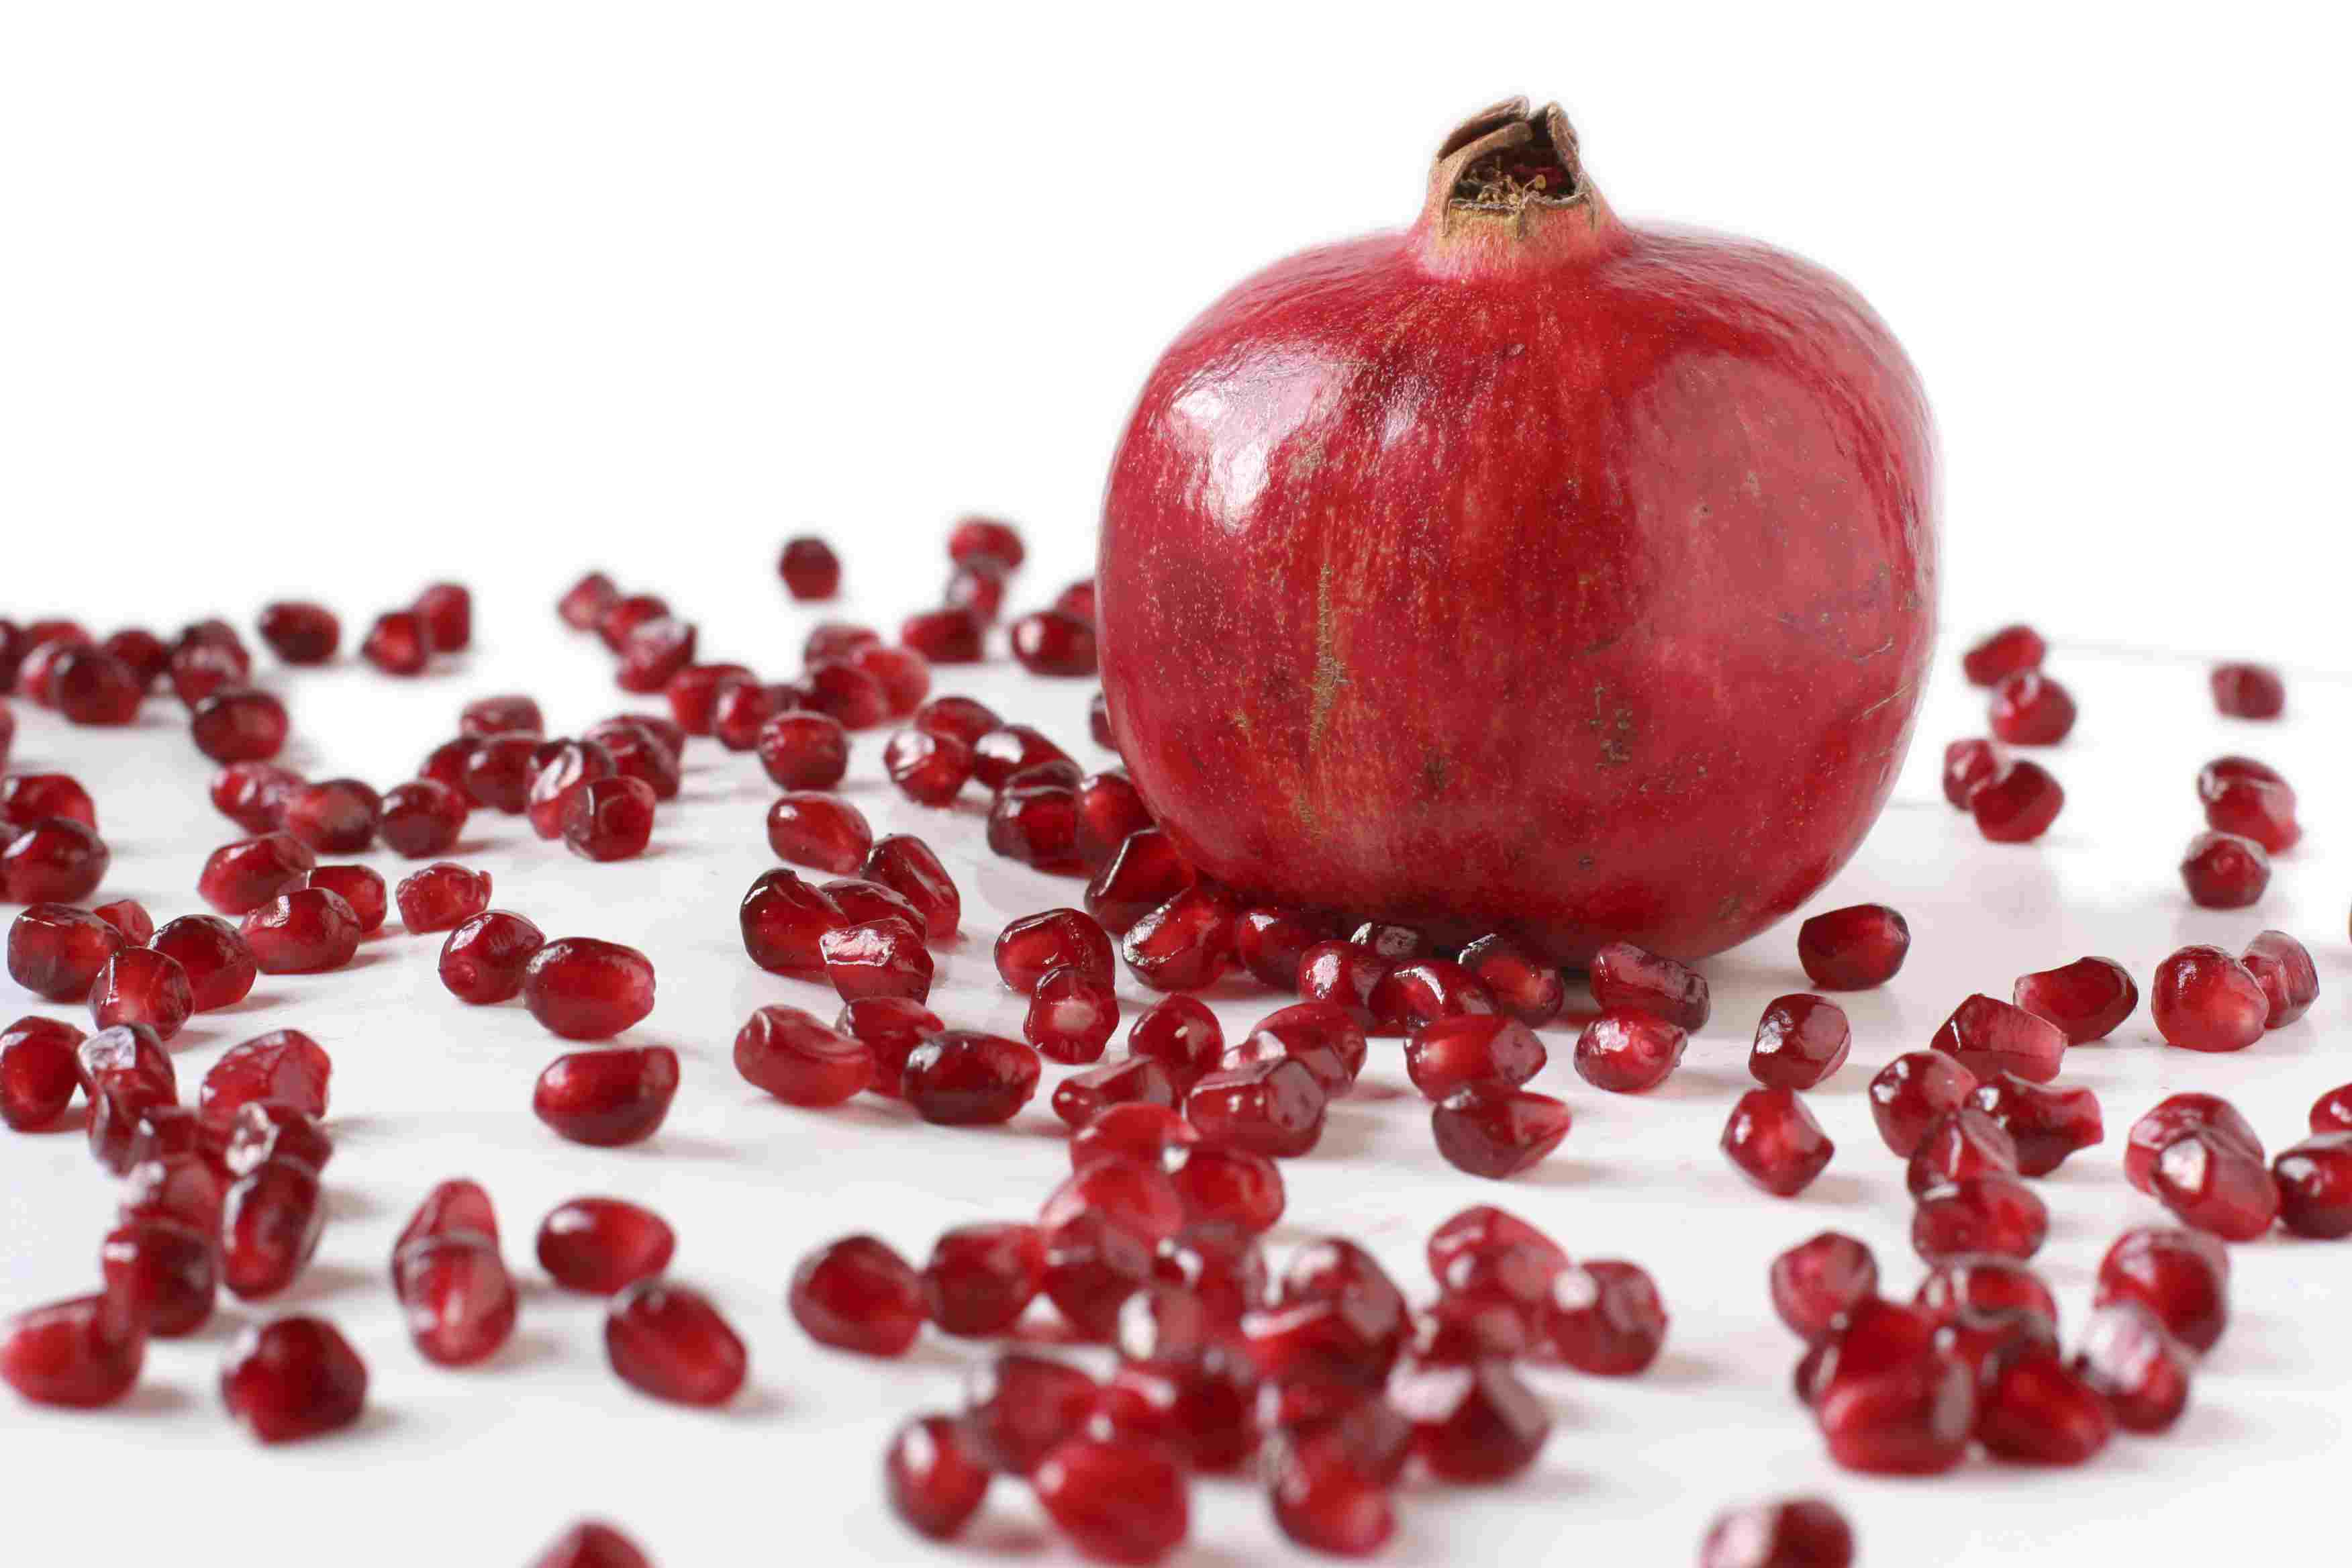 Whole Pomegranates and Seeds